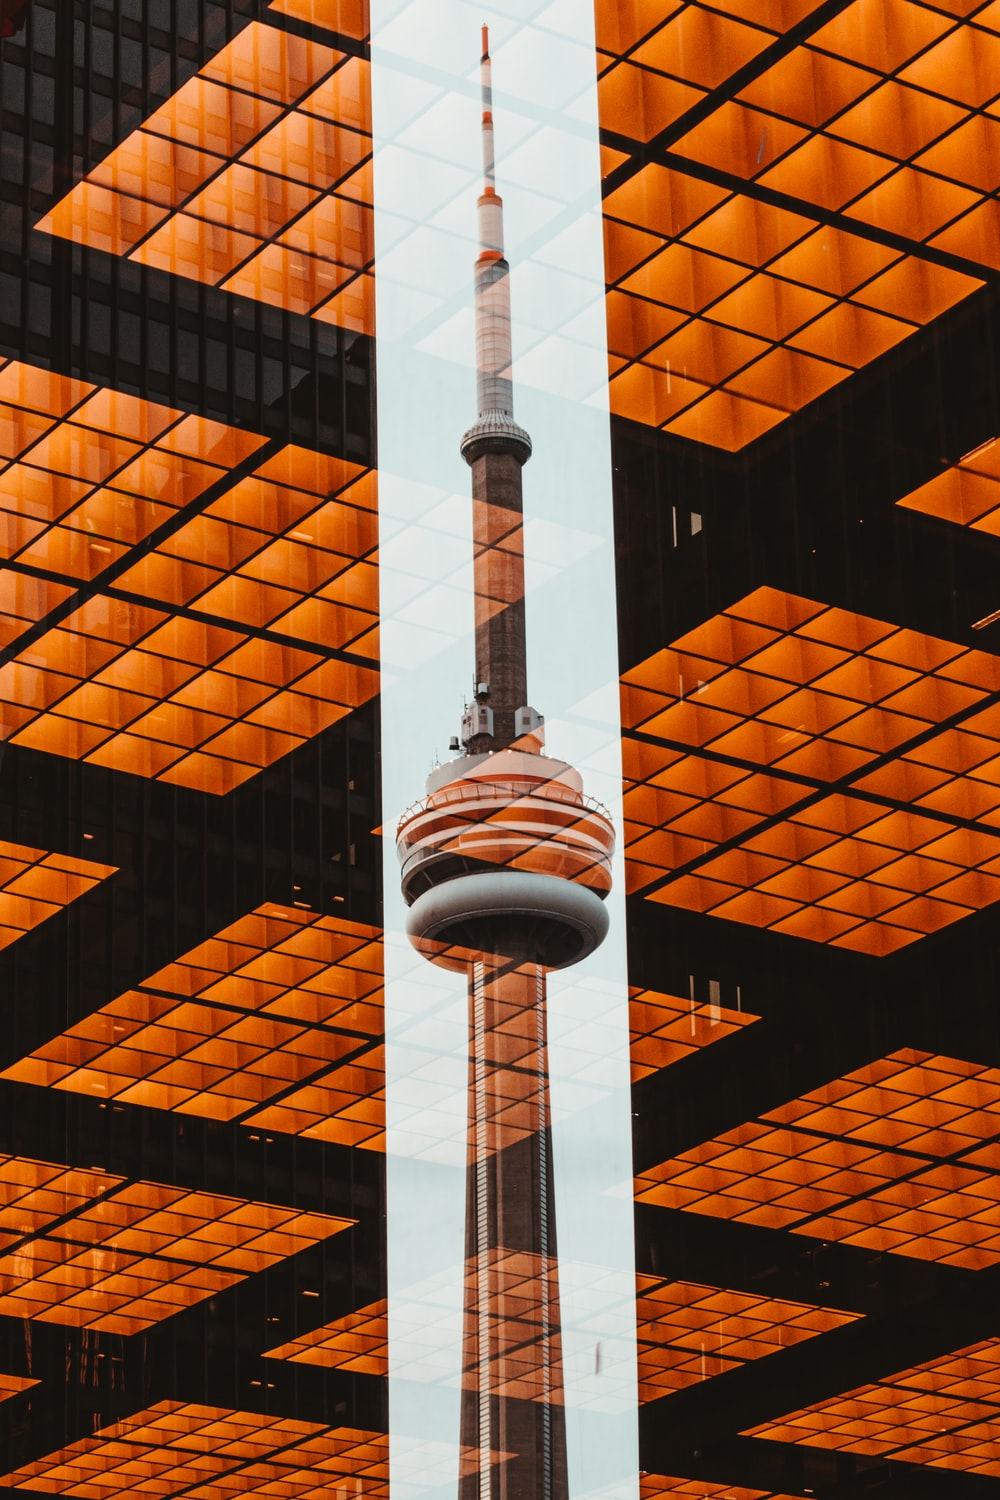 CN tower view between two high rise building